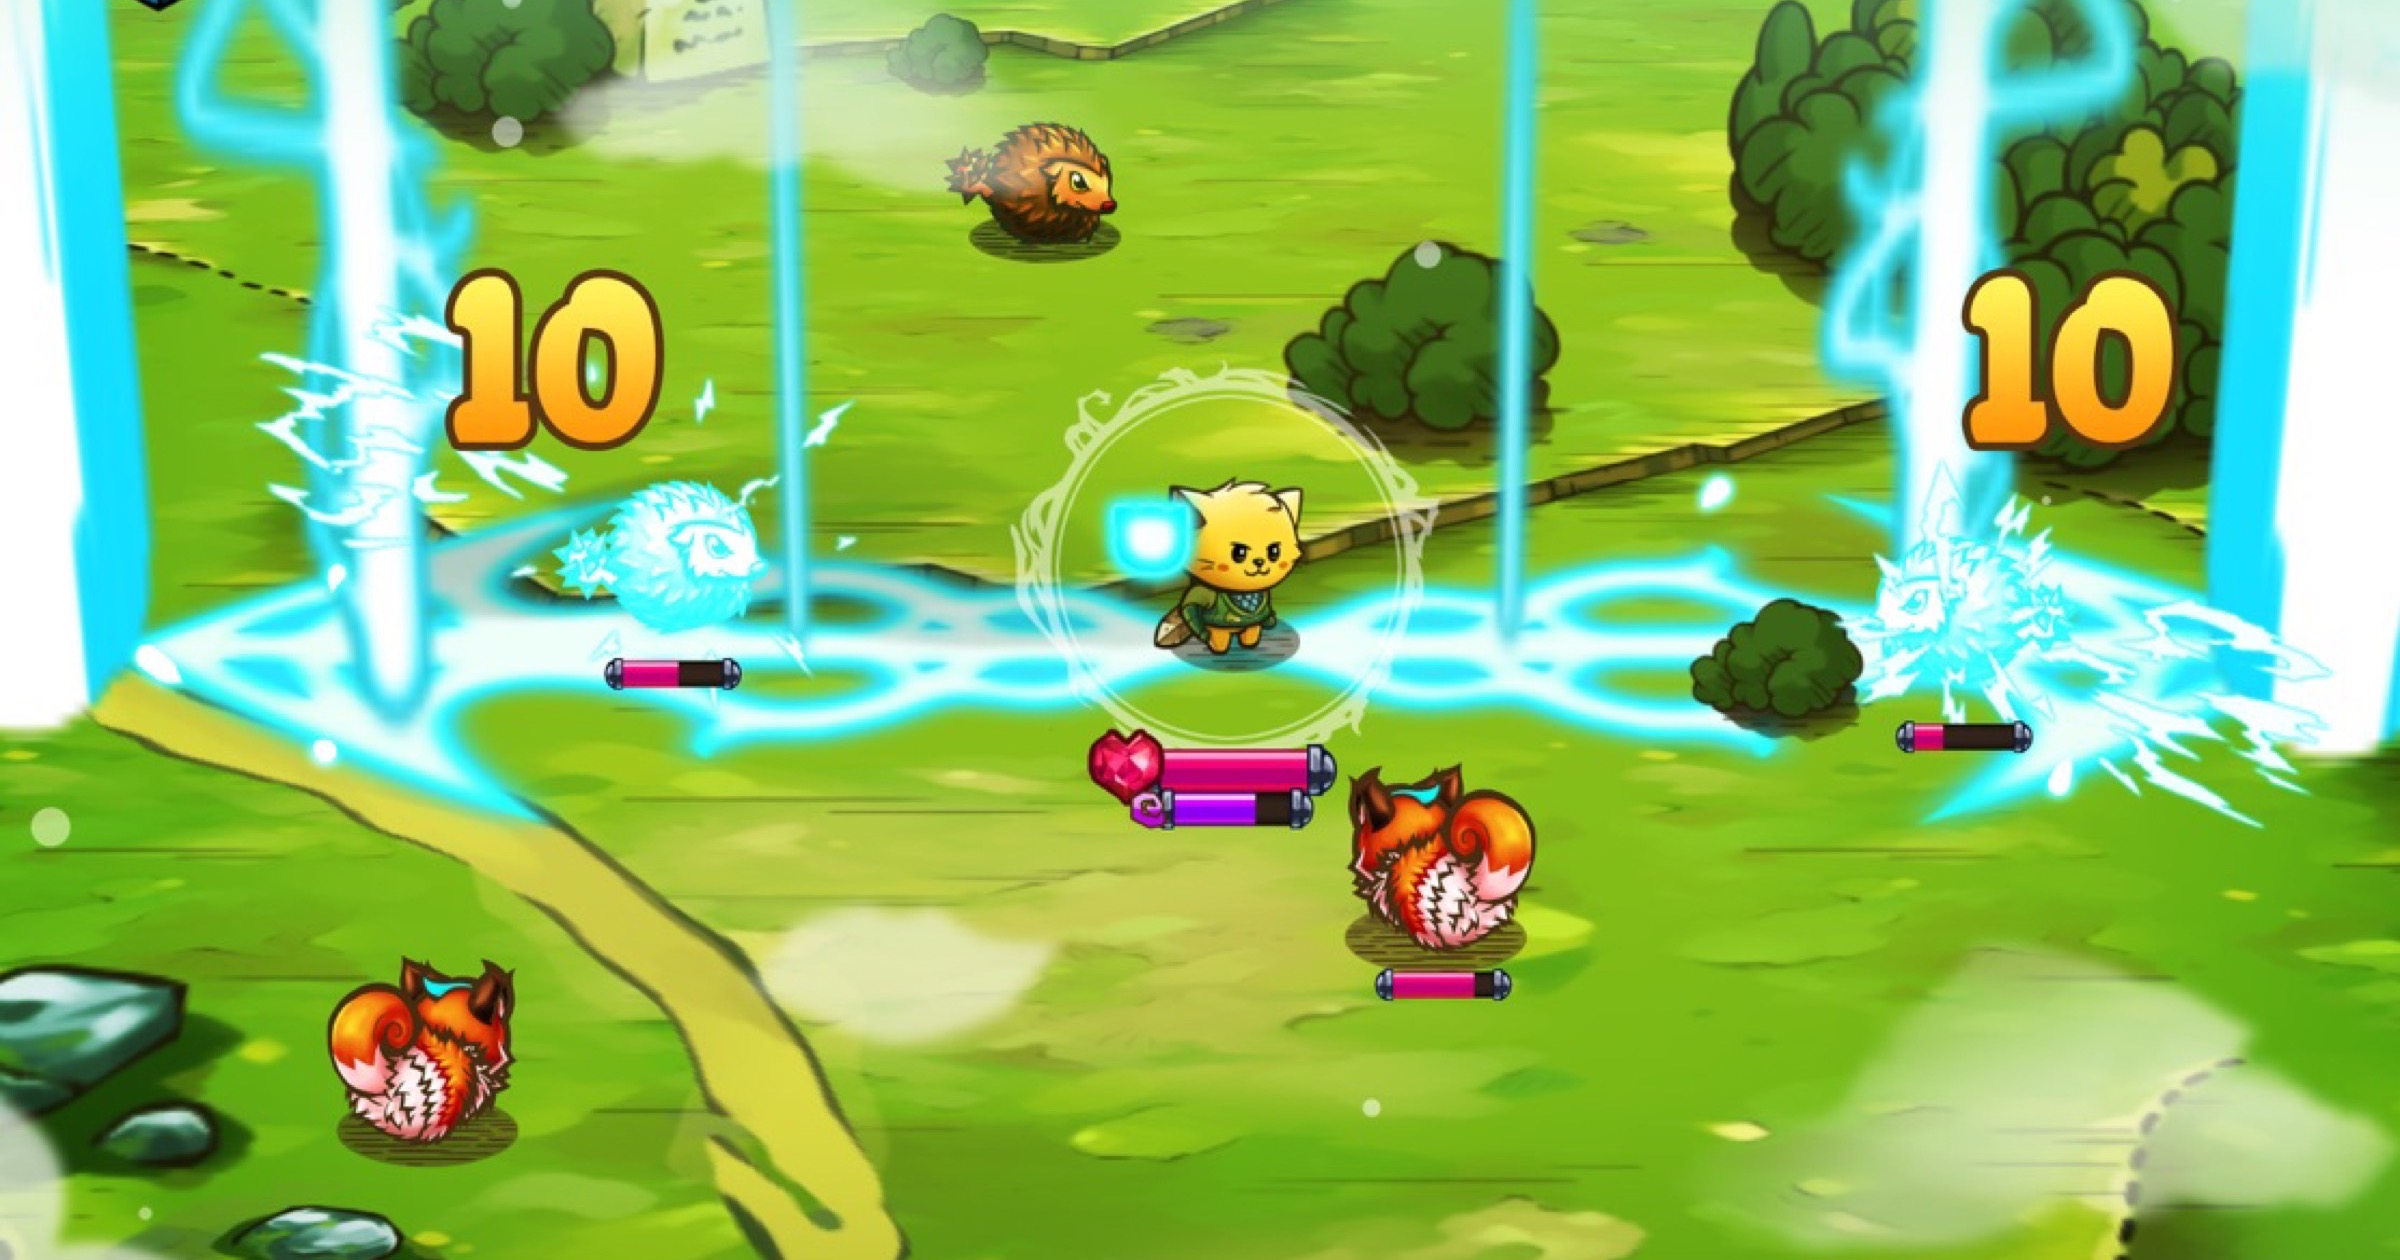 'Cat Quest' Game on Sale for $1, Down From $5